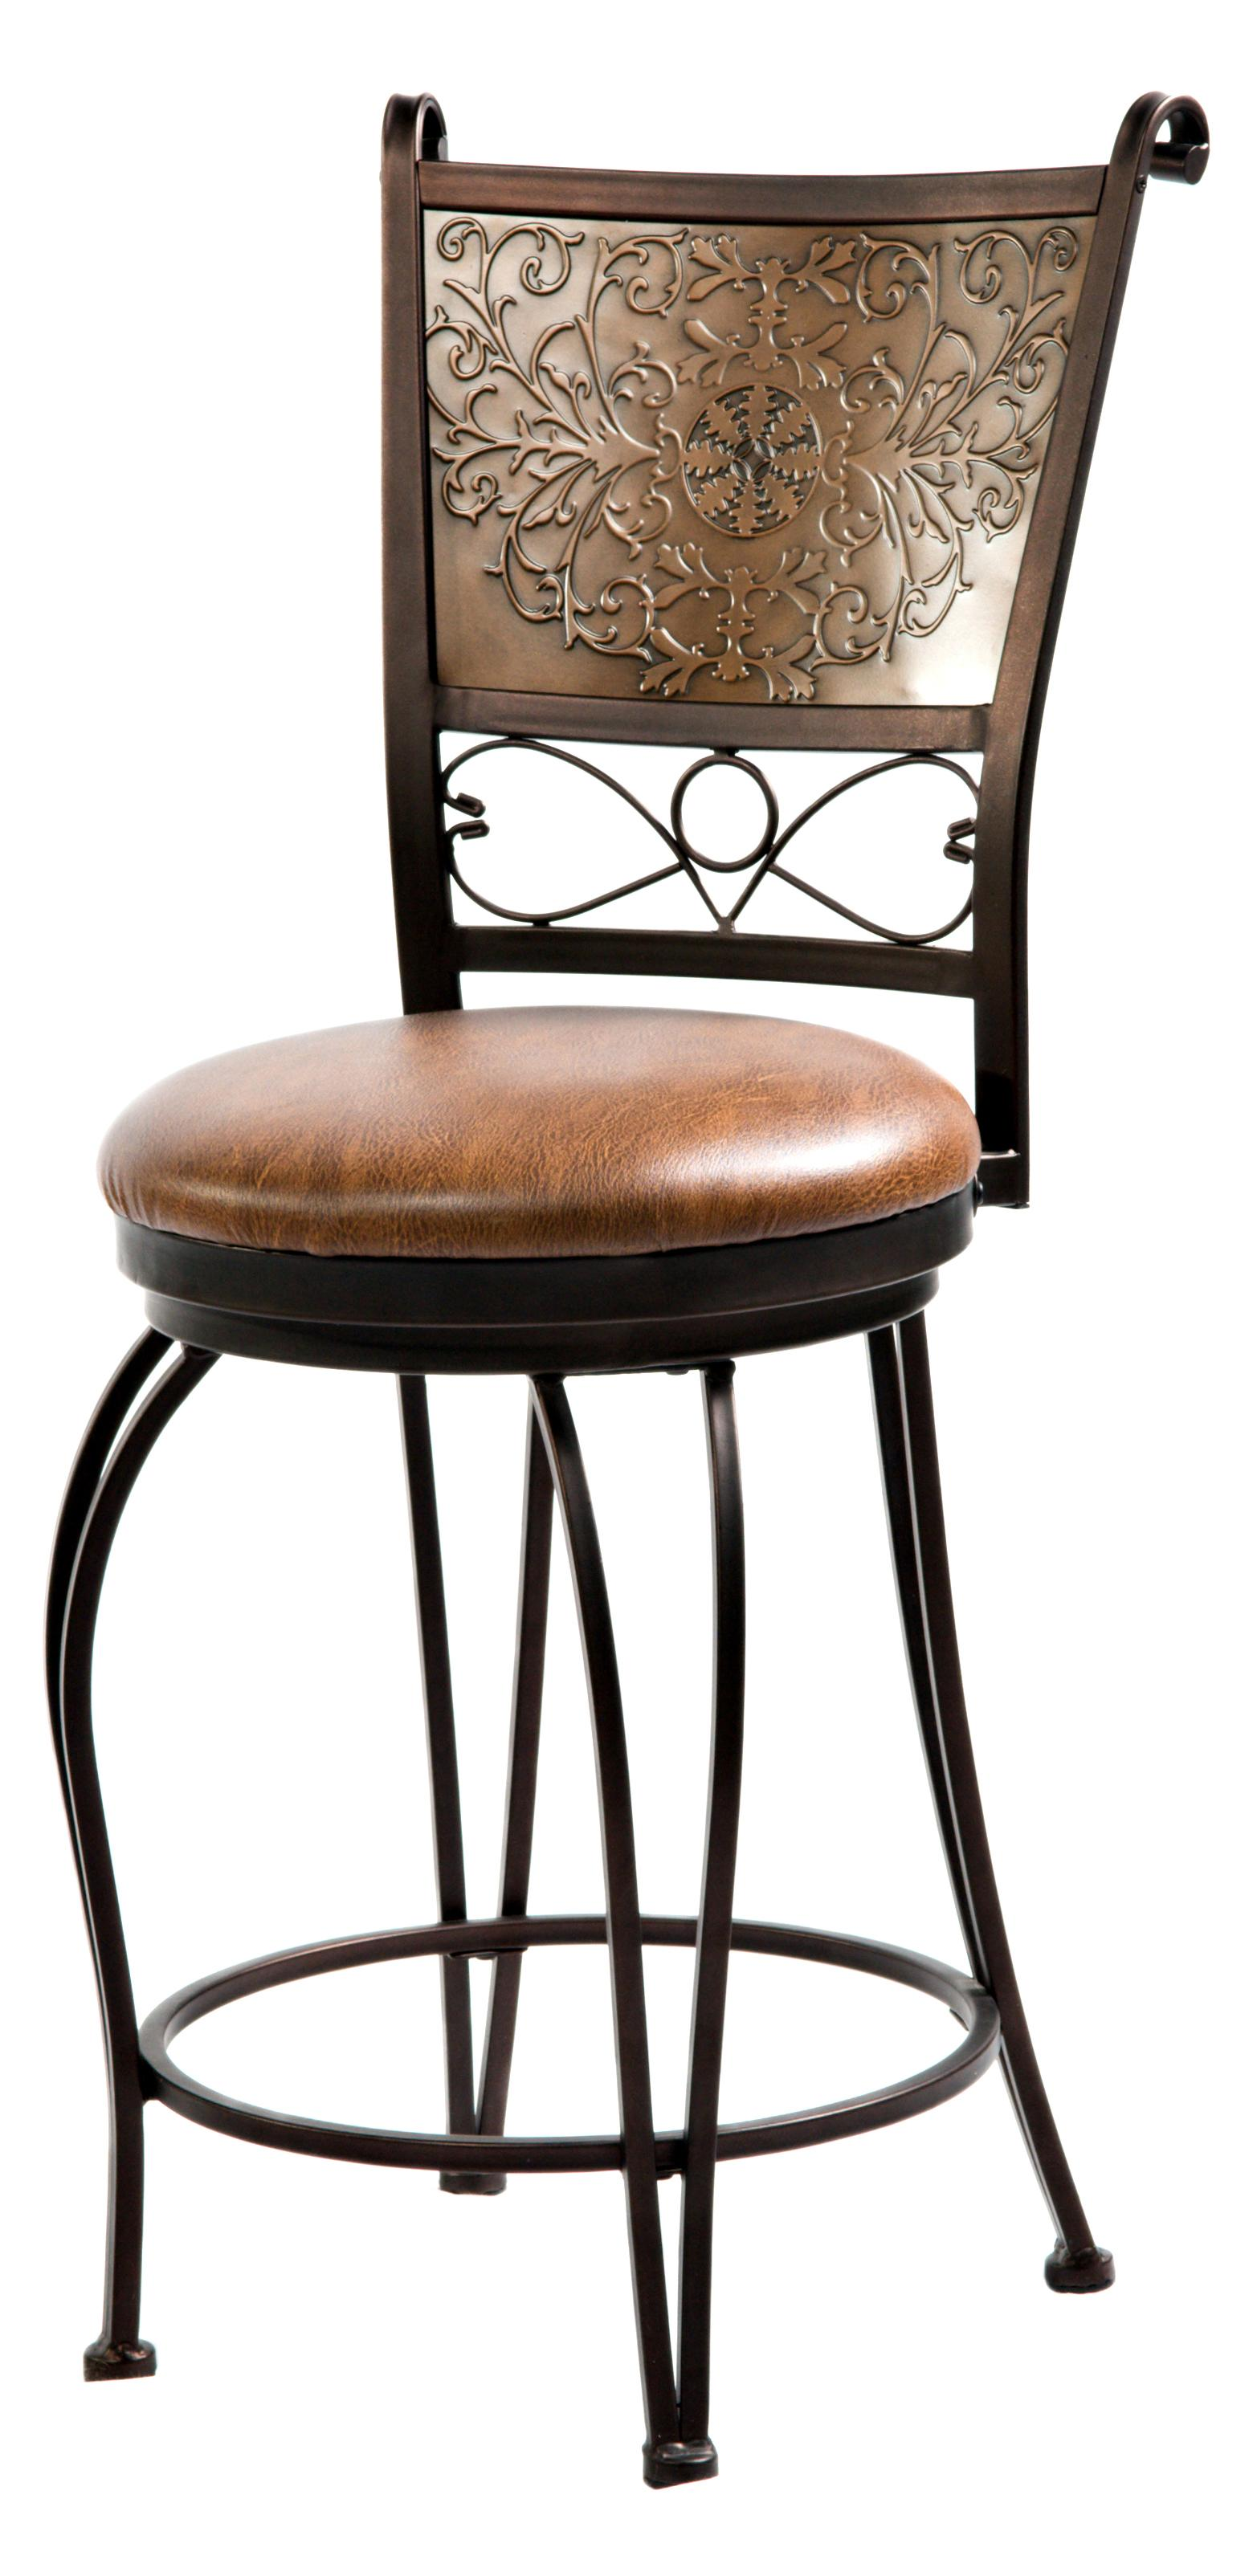 Powell Bar Stools u0026 Tables 24 Inch St&ed Back Counter Stool - Item Number 222  sc 1 st  Wayside Furniture & Powell Bar Stools u0026 Tables 24 Inch Bronze with Muted Copper ... islam-shia.org